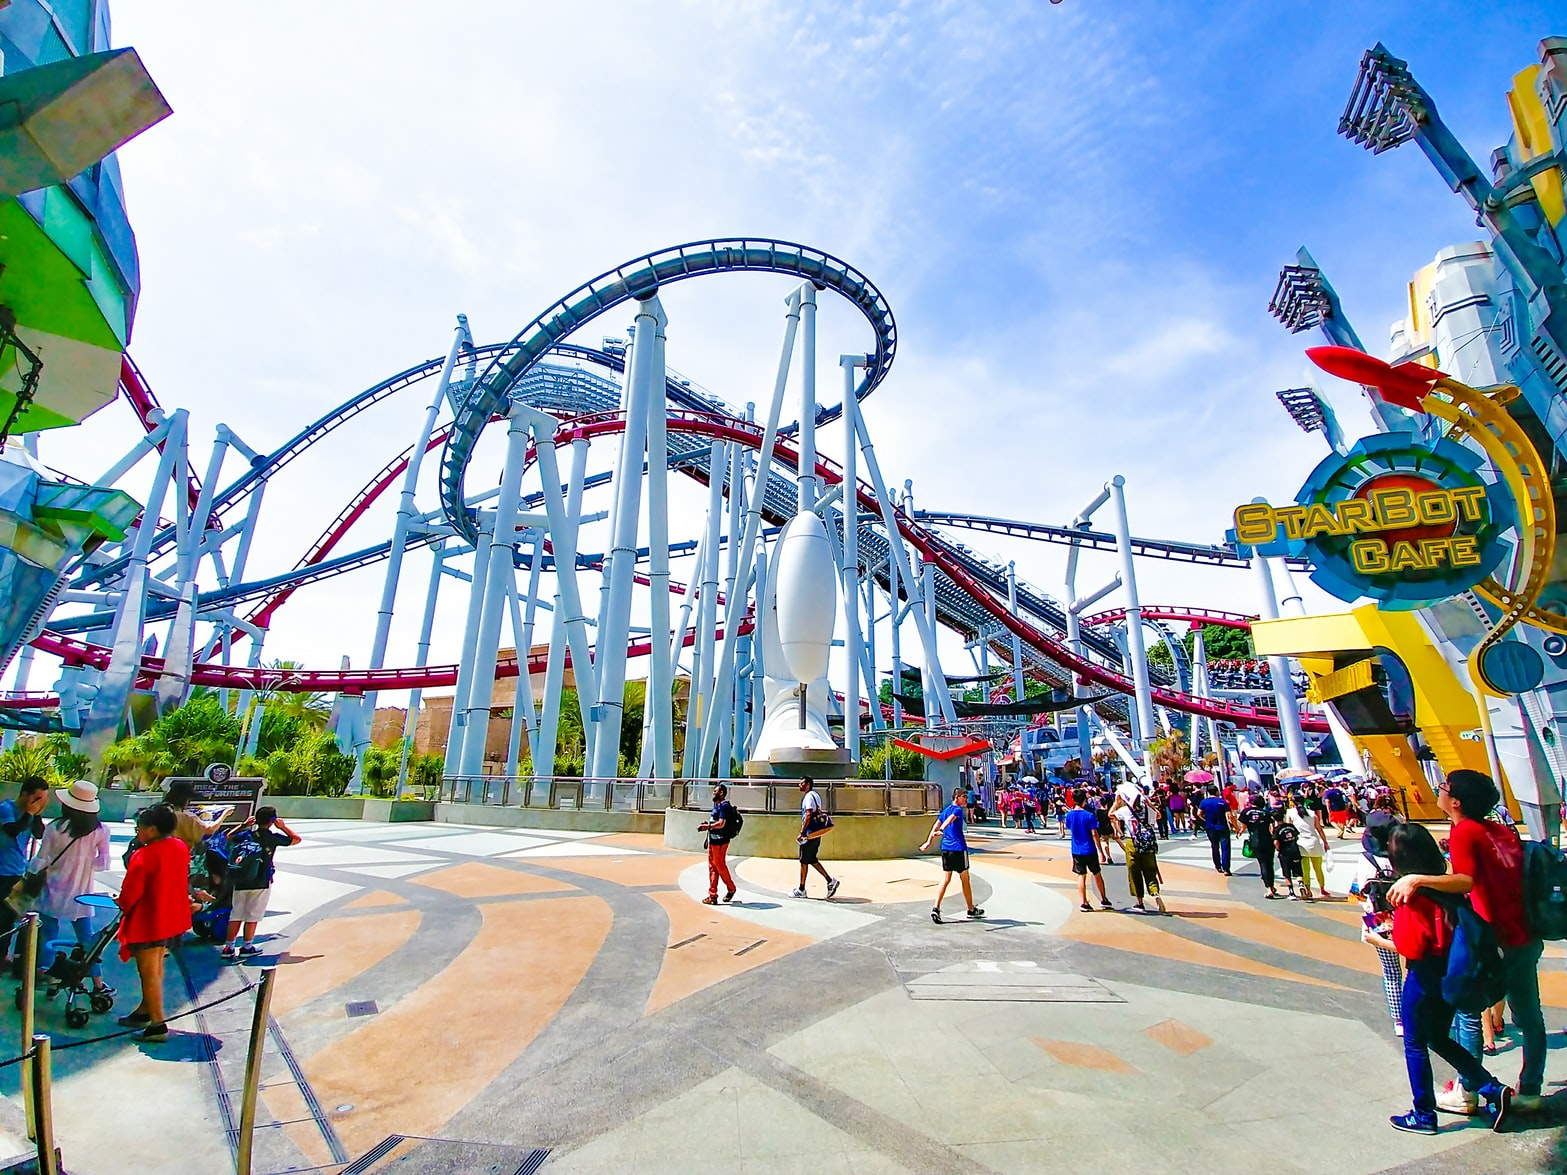 Singapore for Thrill Seekers